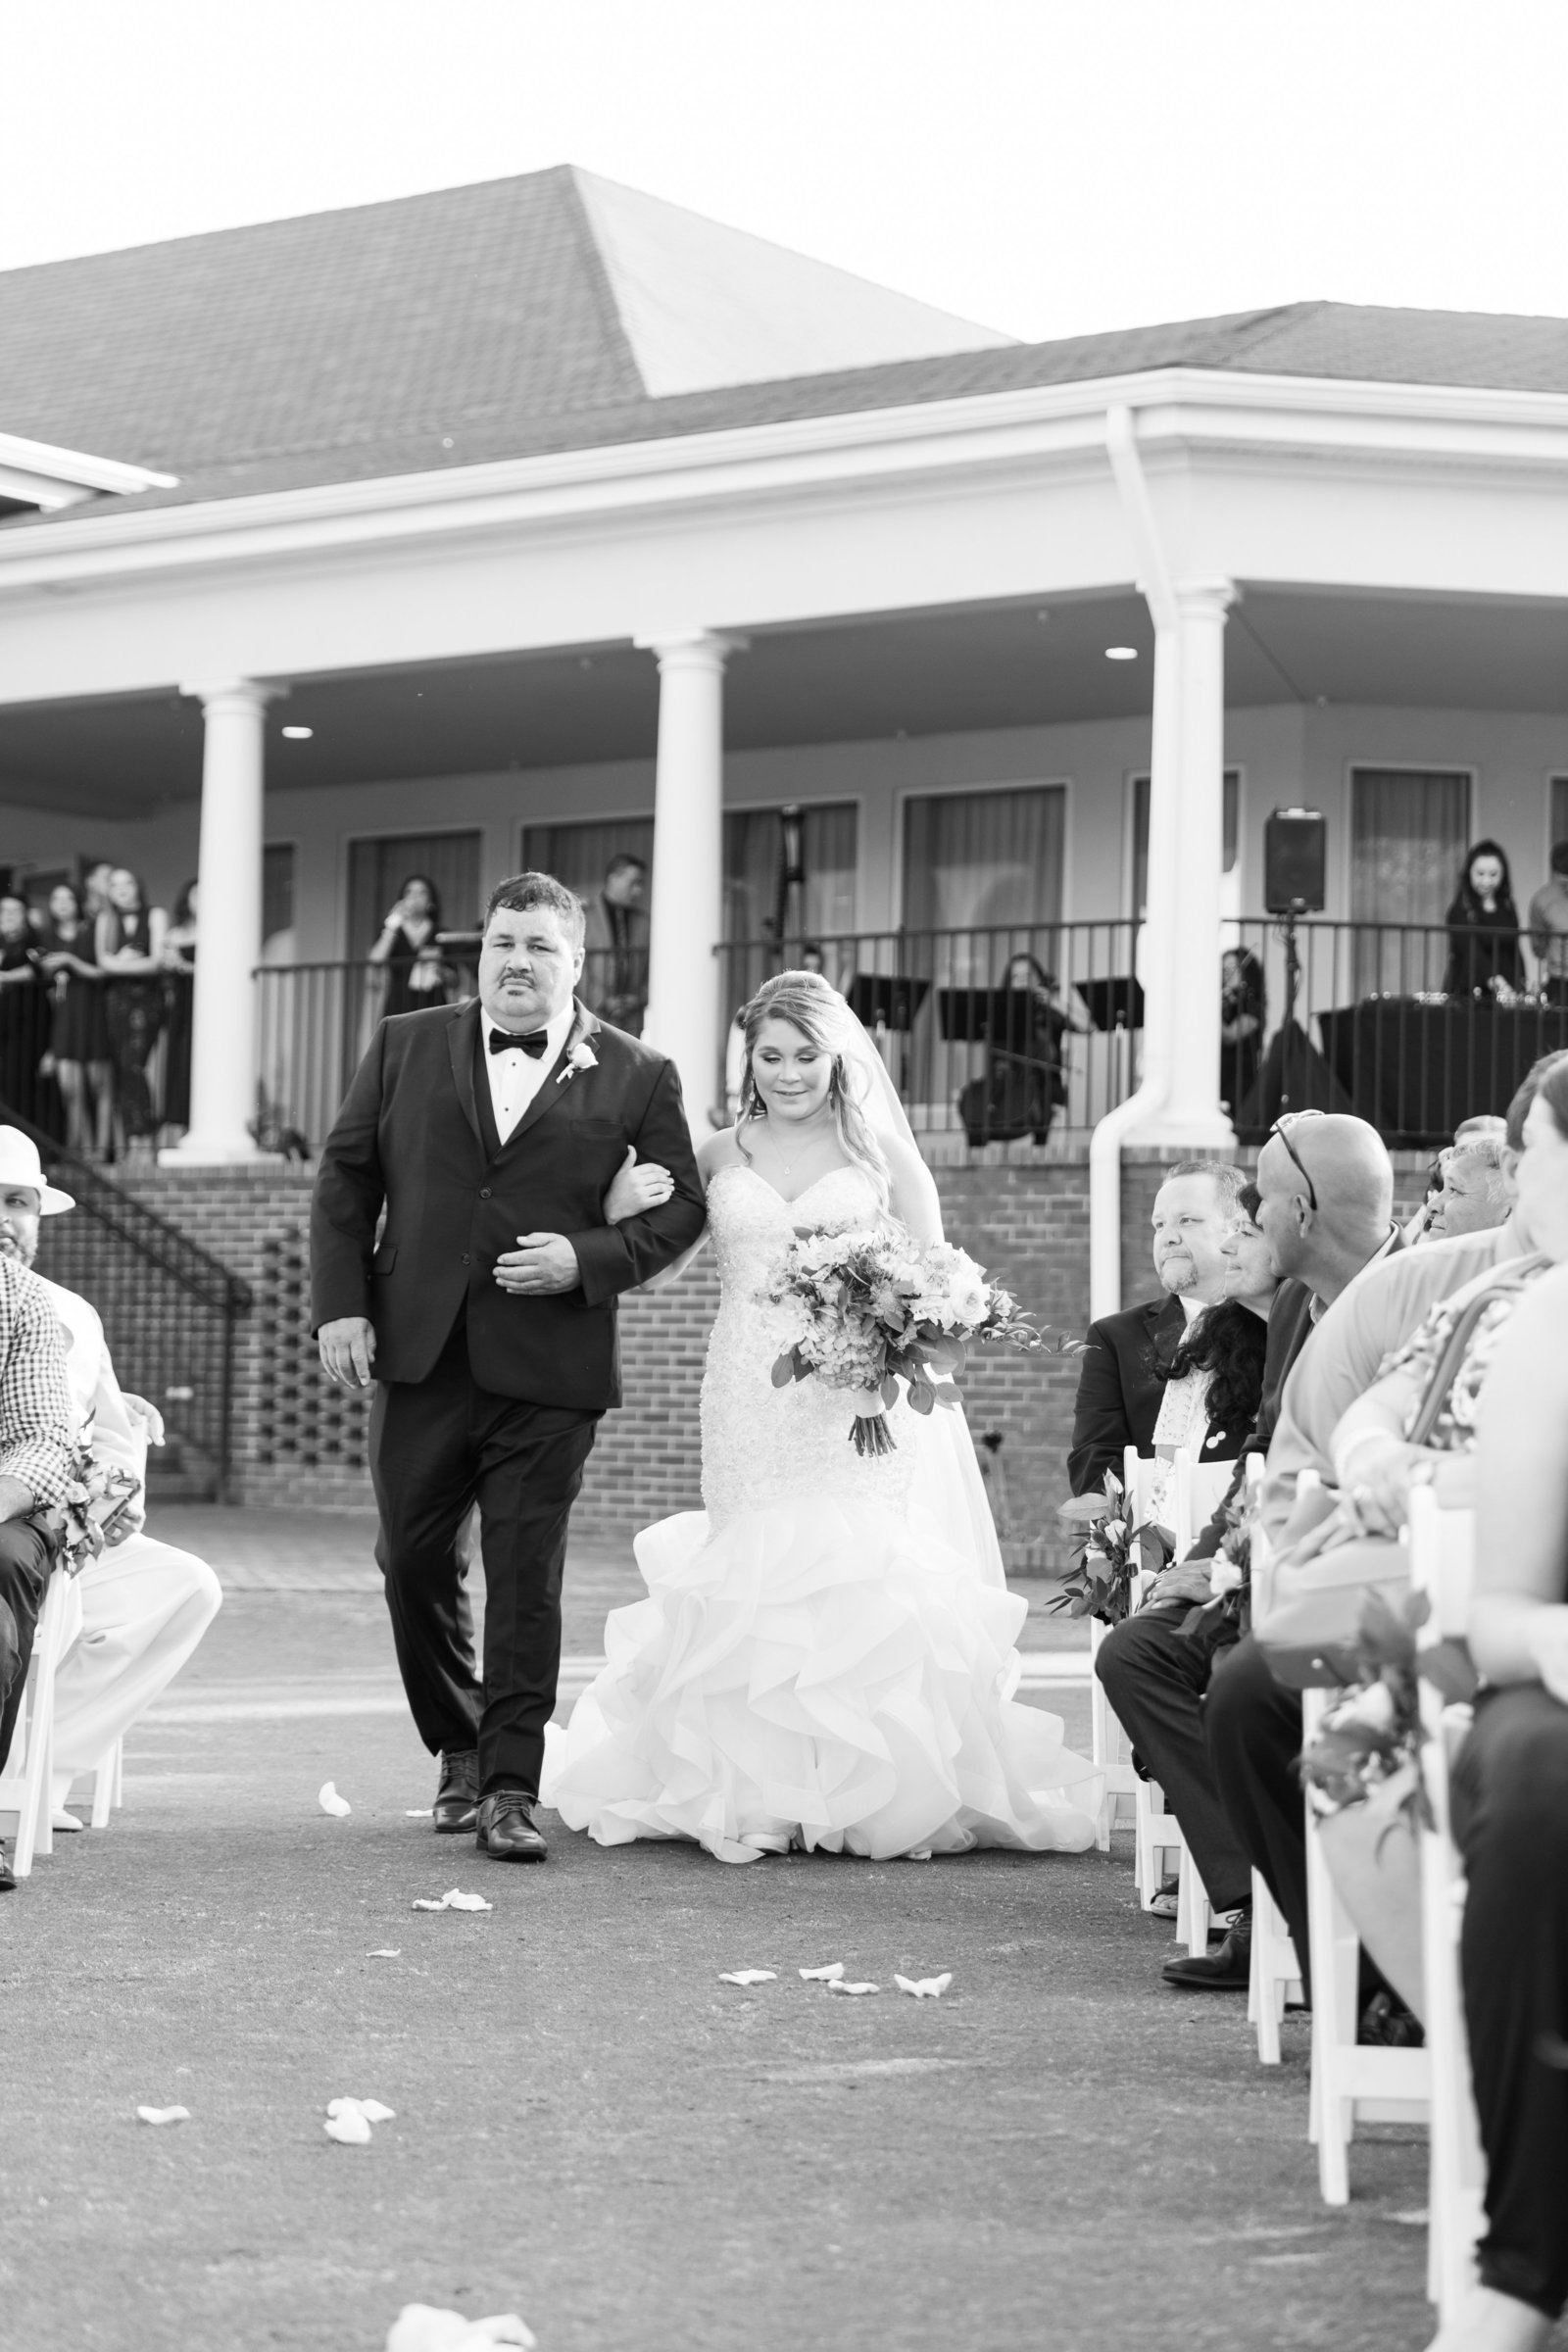 Jennifer_B_Photography-Pinehurst_Club-Pinehurst_NC-Wedding_Day-Caleb___Miranda-JB_Favs-2019-0155